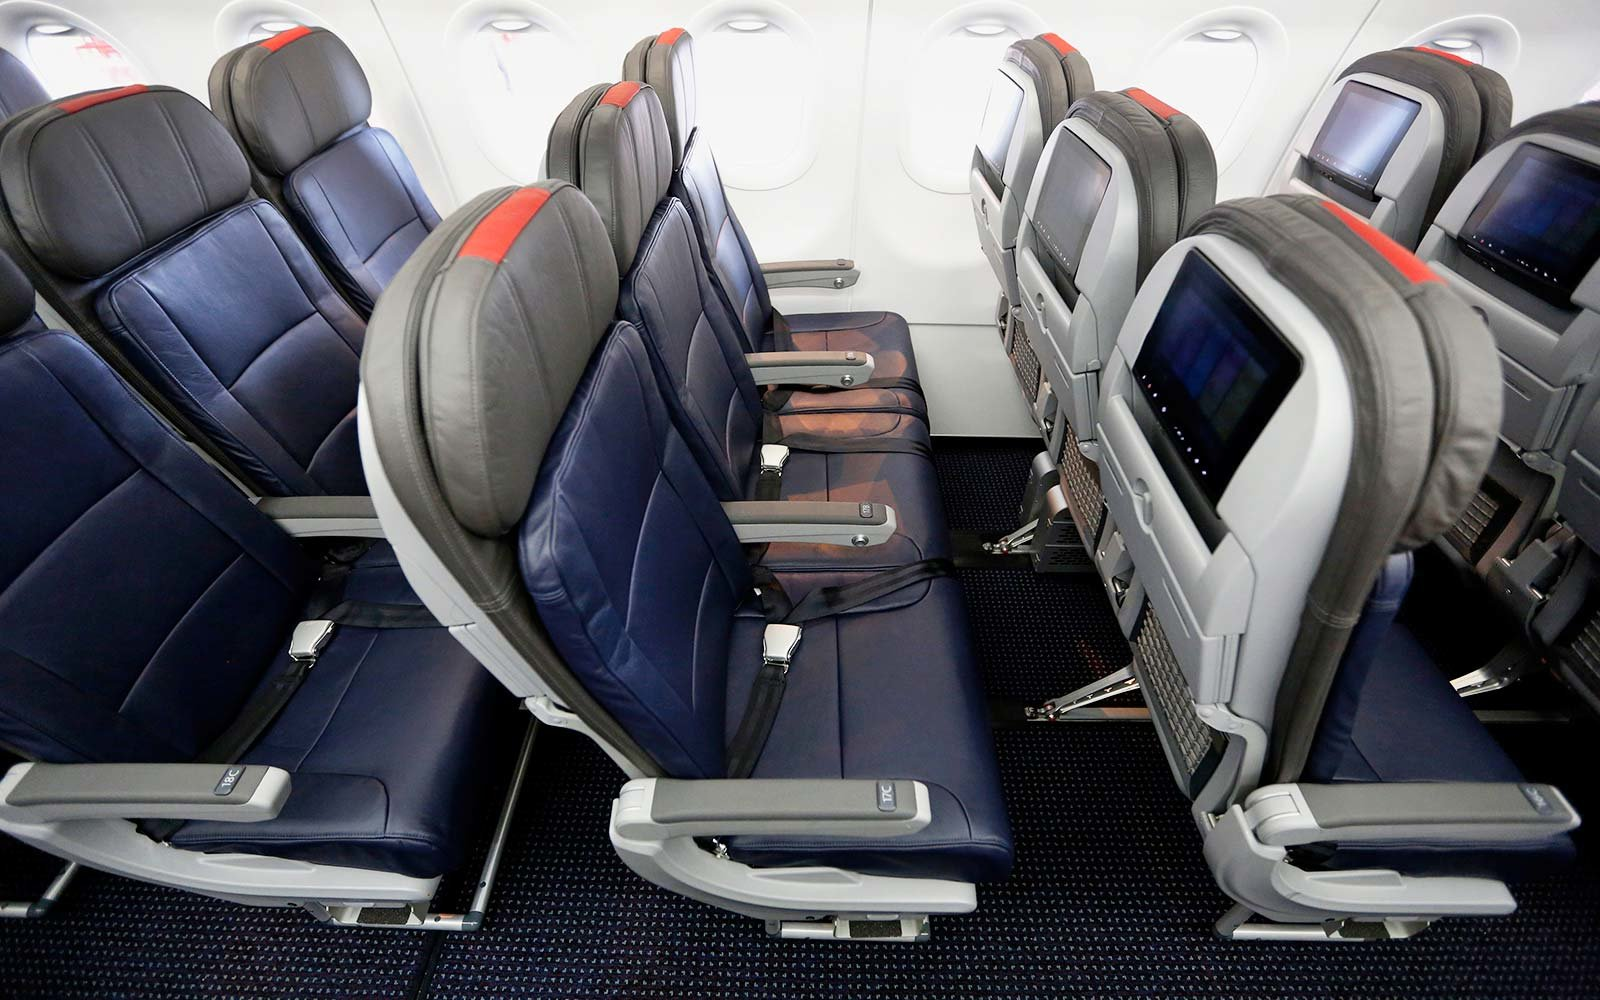 Seats on the American Airlines airplane